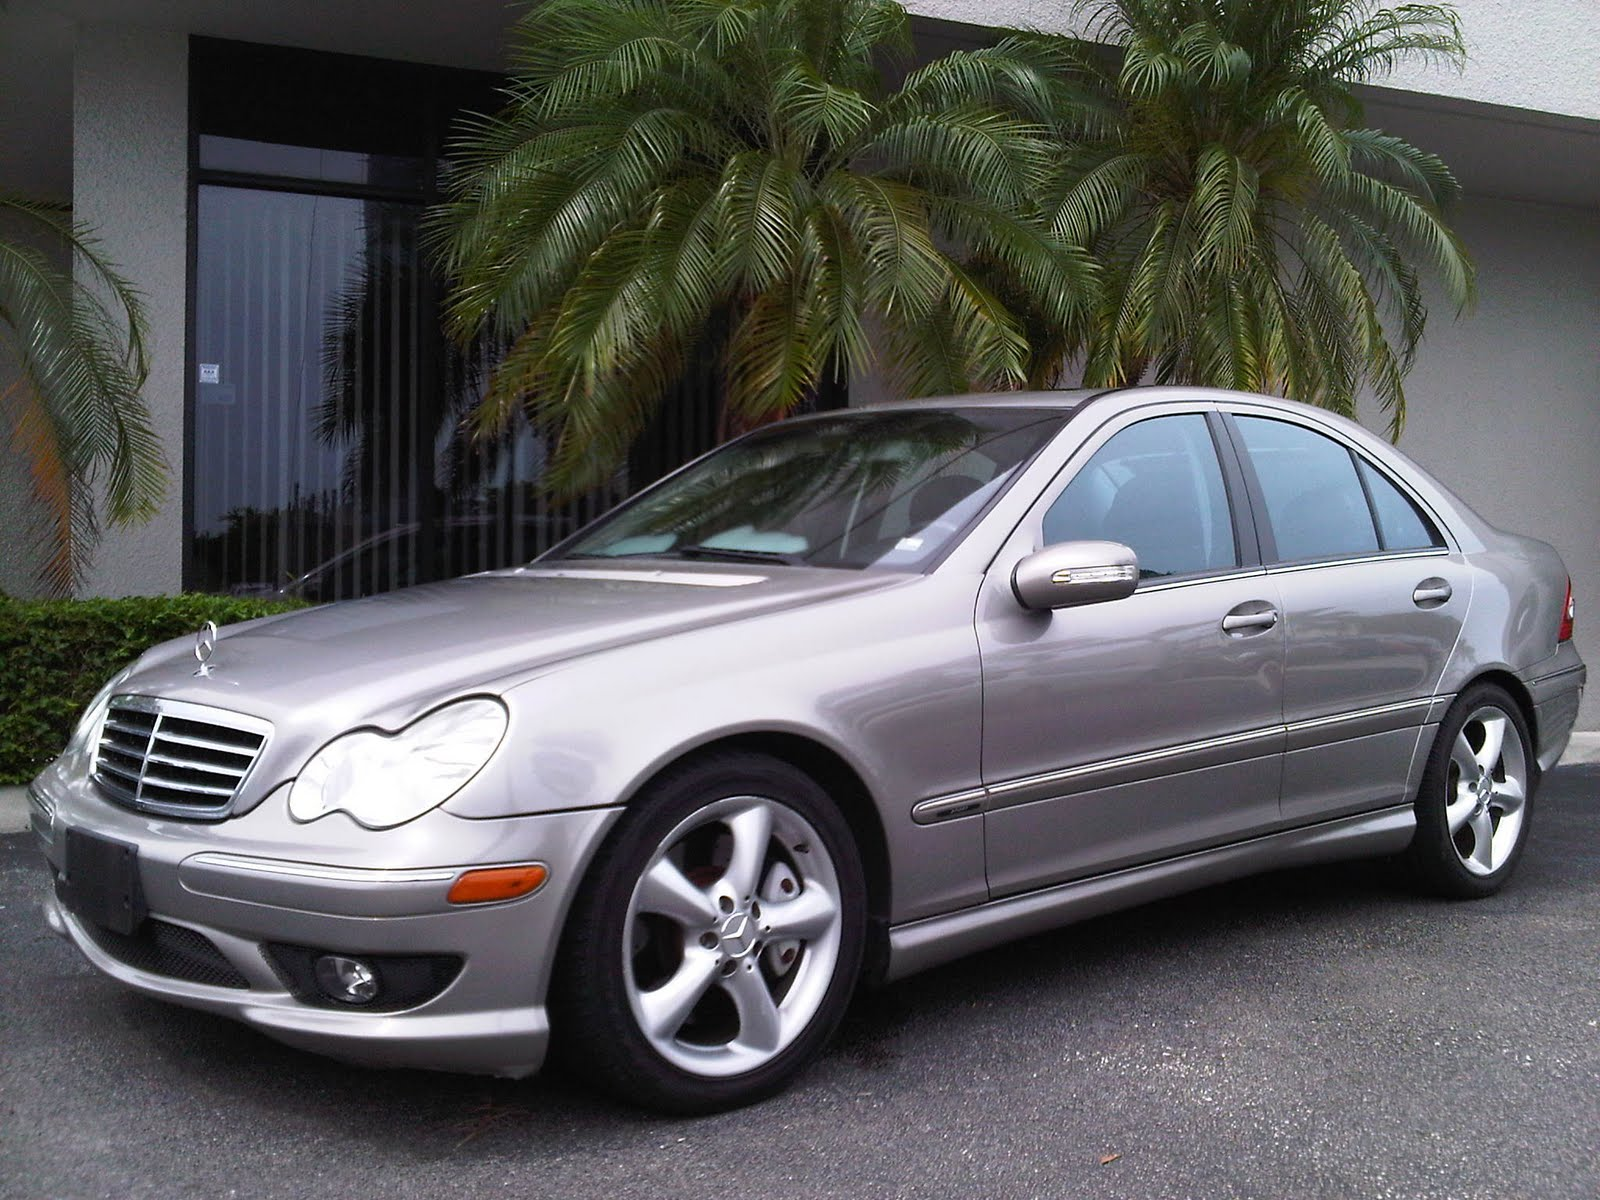 Awesome motors inventory 2006 mercedes benz c230 sport for Mercedes benz 2006 c230 sport